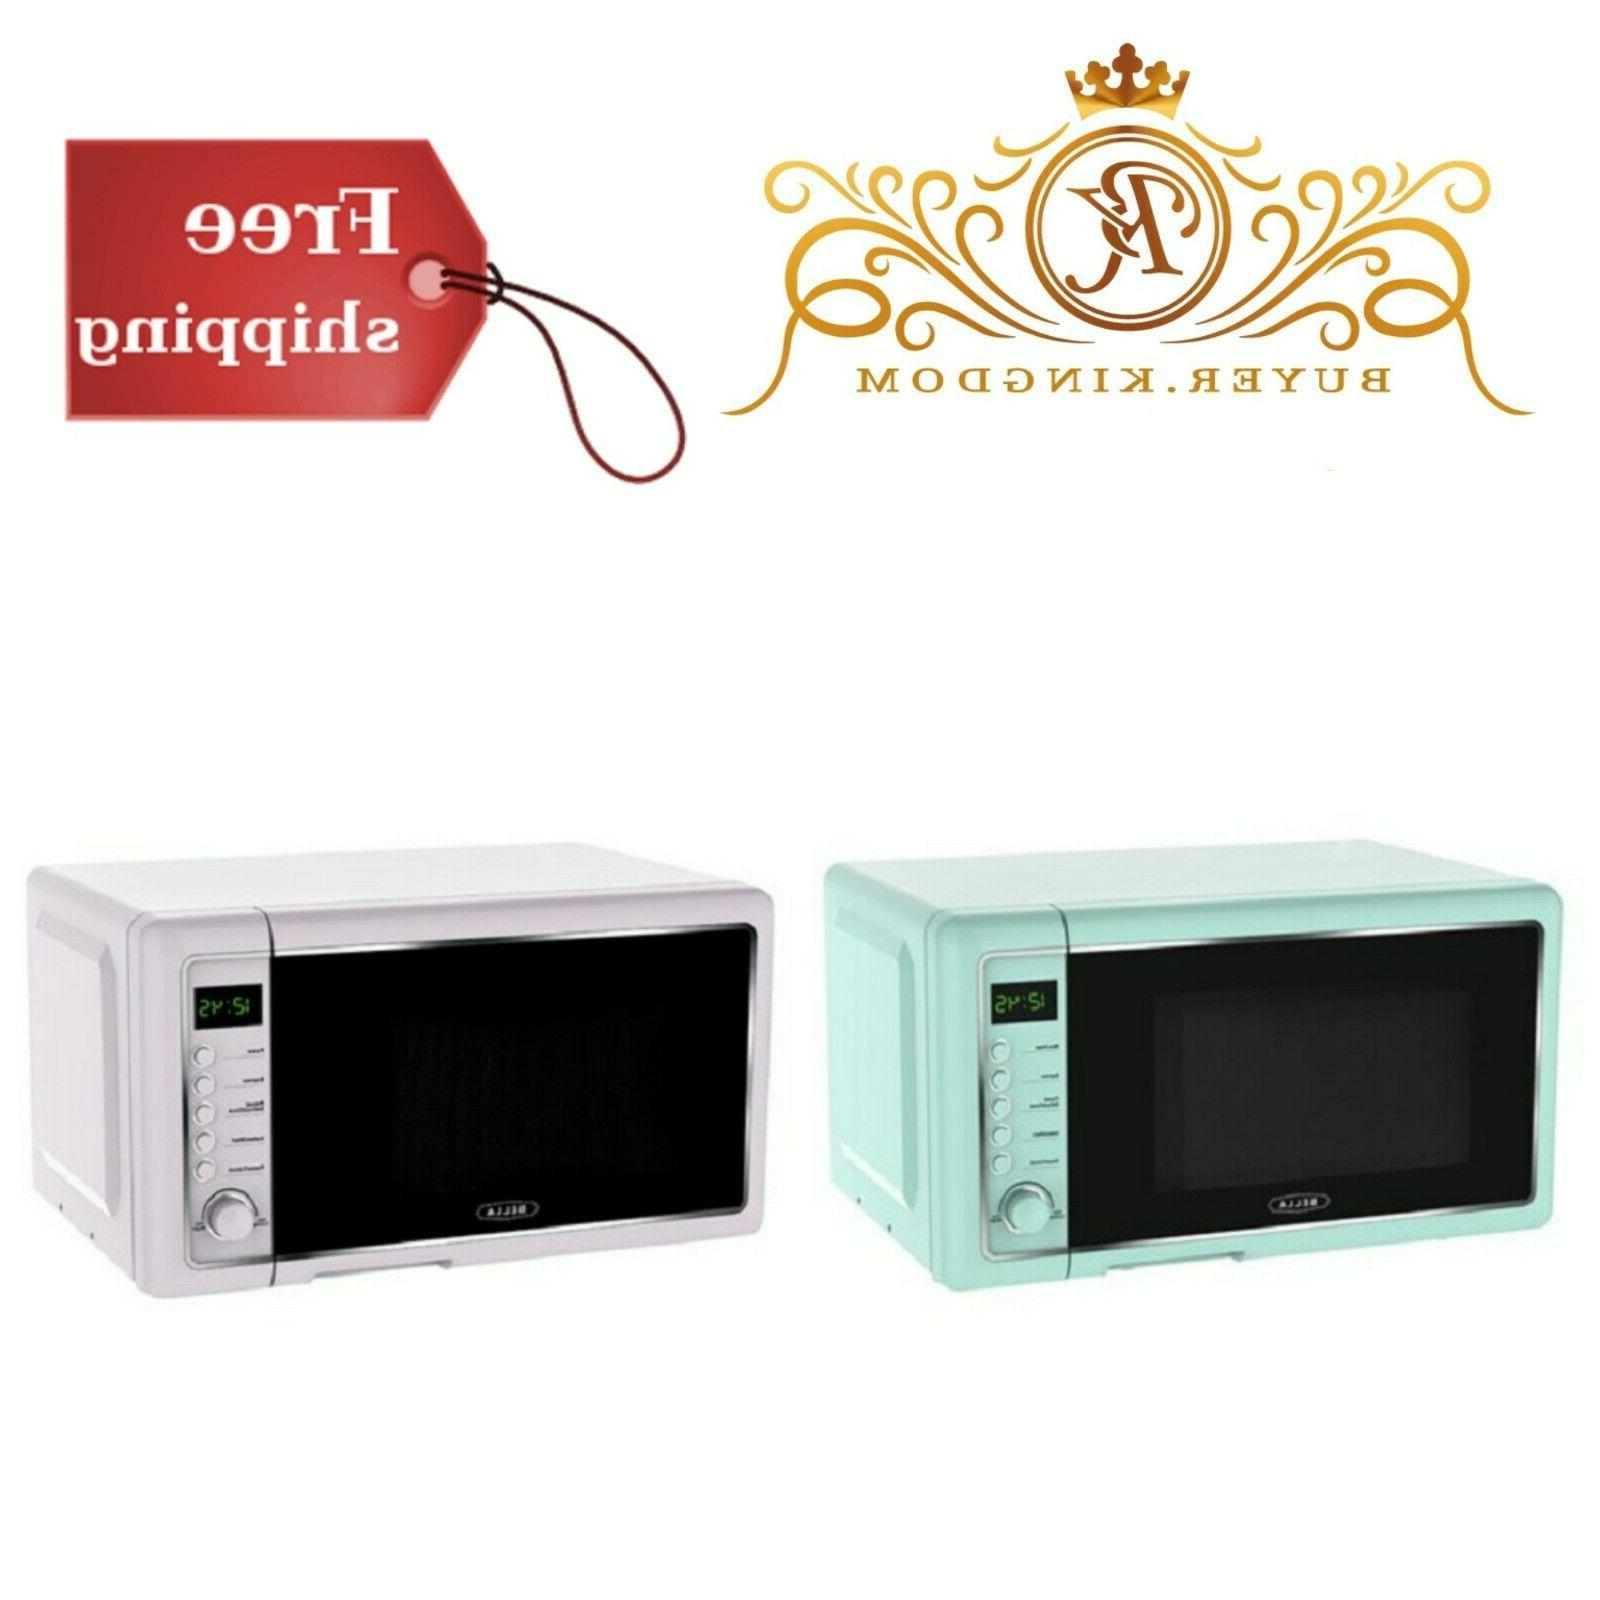 compact countertop stylish microwave oven with express